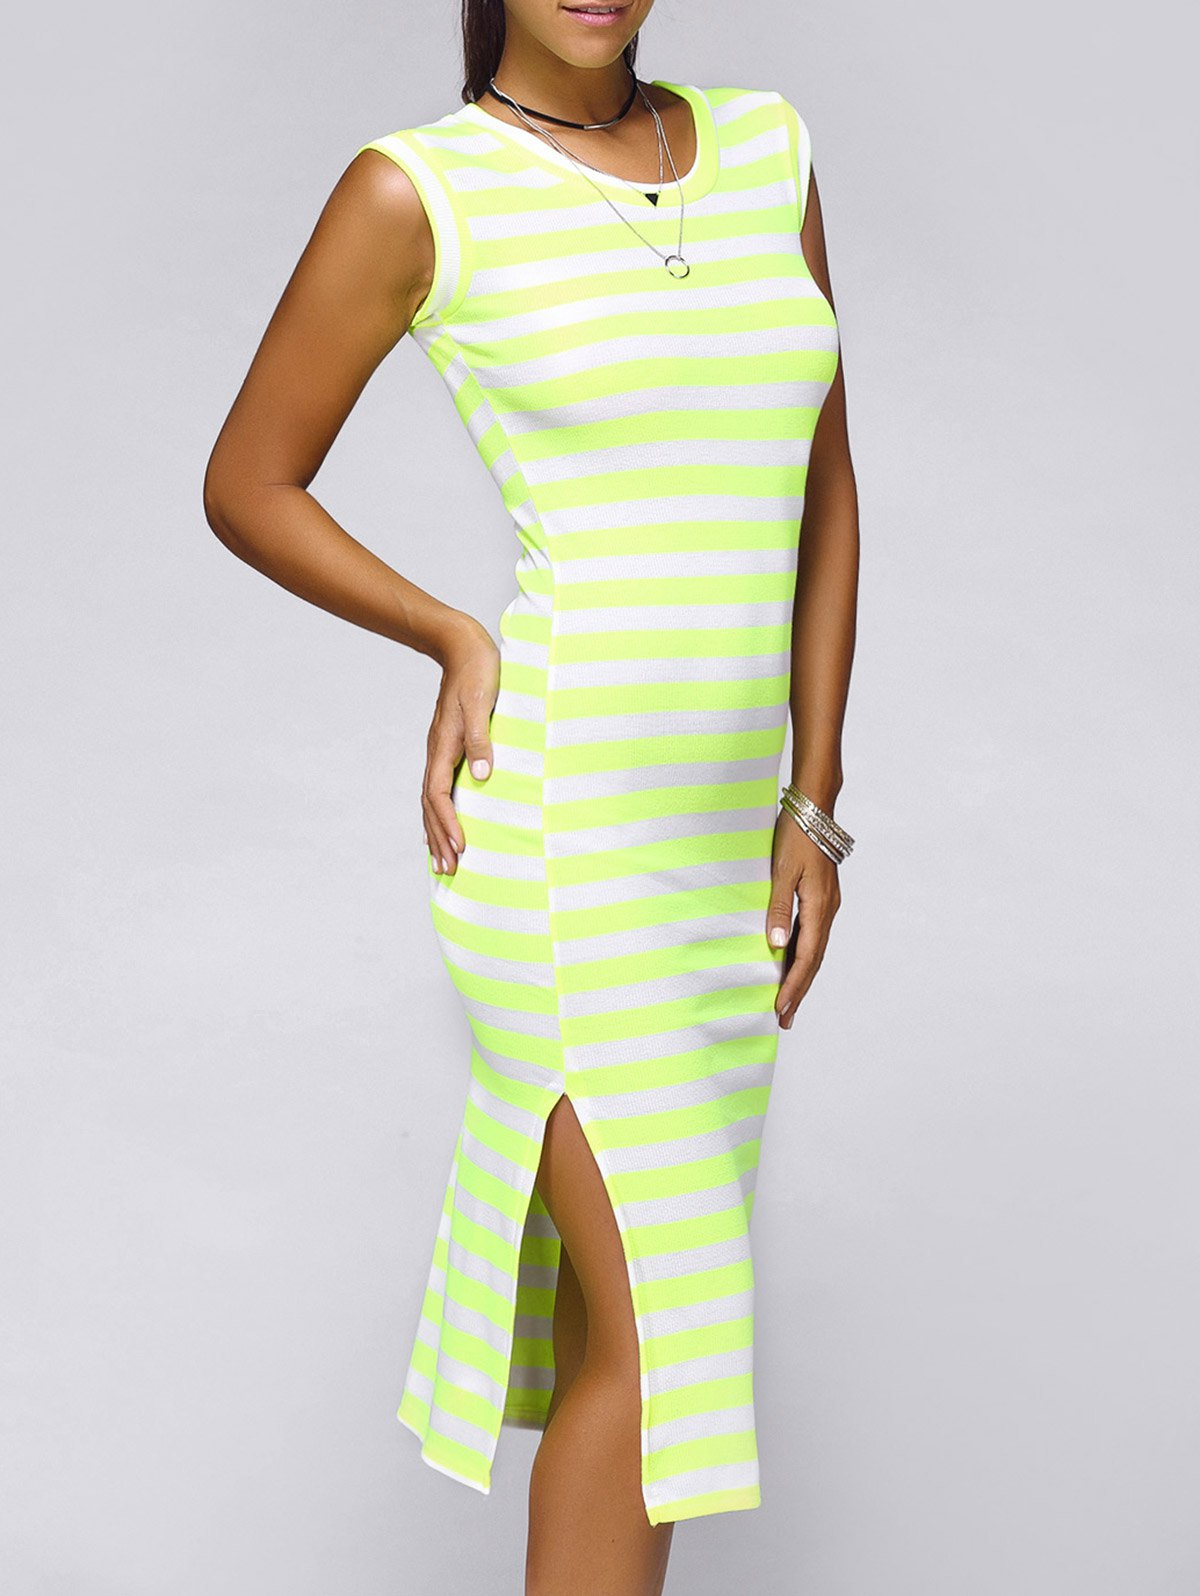 Brief Sleeveless Striped Side Slit Women's Dress - FLUORESCENT YELLOW ONE SIZE(FIT SIZE XS TO M)